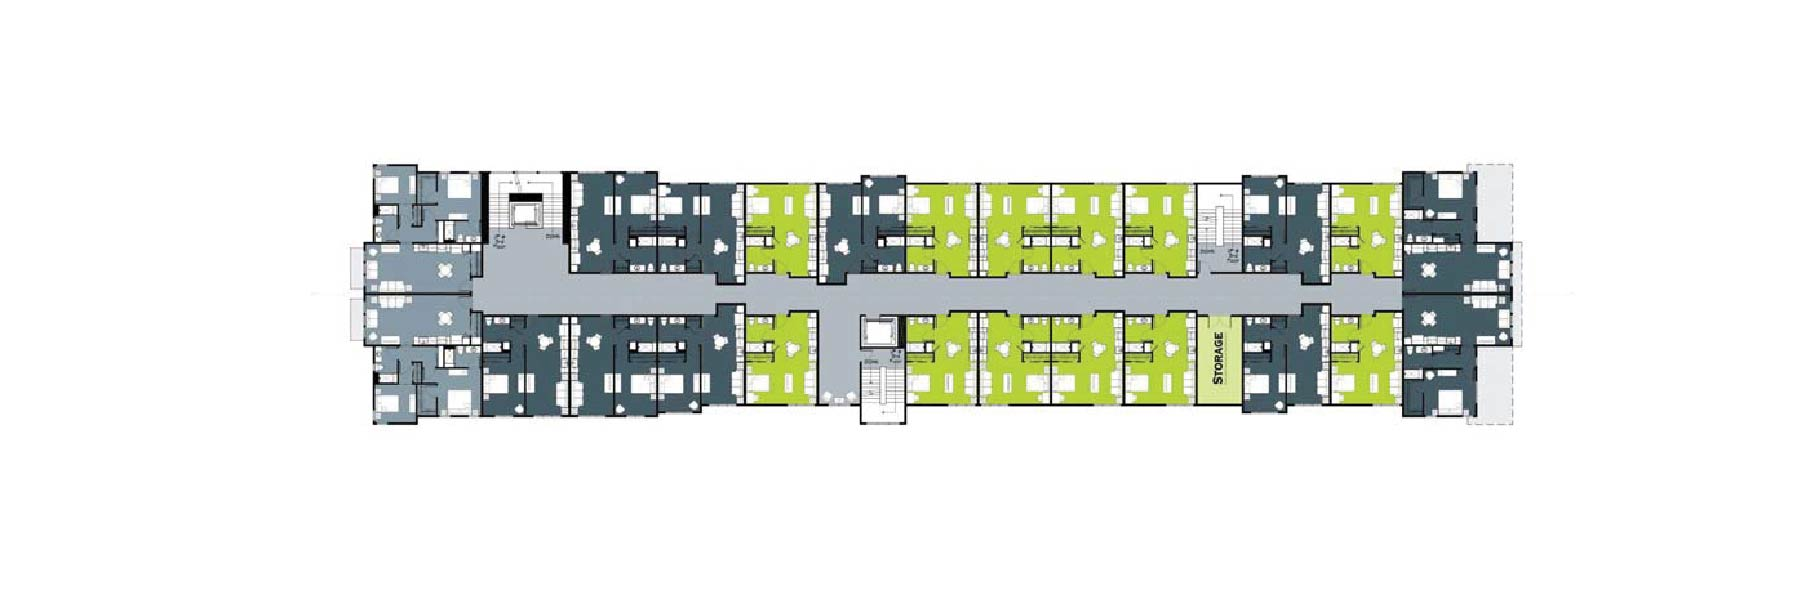 Trailhead Level 3 and 4 Floor Plans